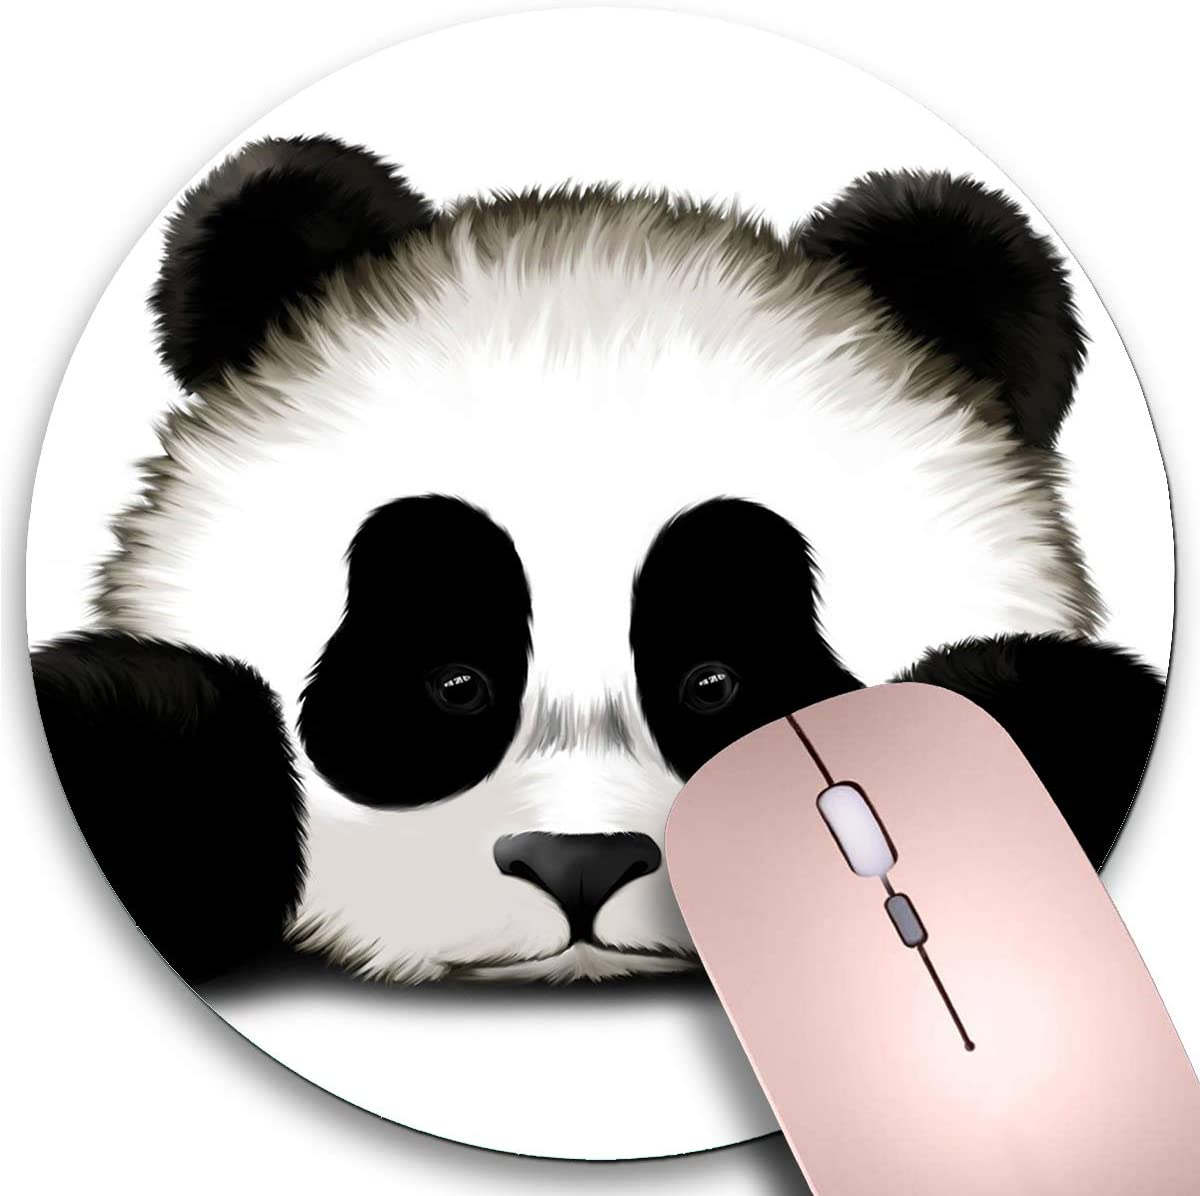 Round Mouse Pad,Cute Panda Non-Slip Rubber Circular Mouse Pads Customized Designed for Home and Office,7.9 x 7.9inch